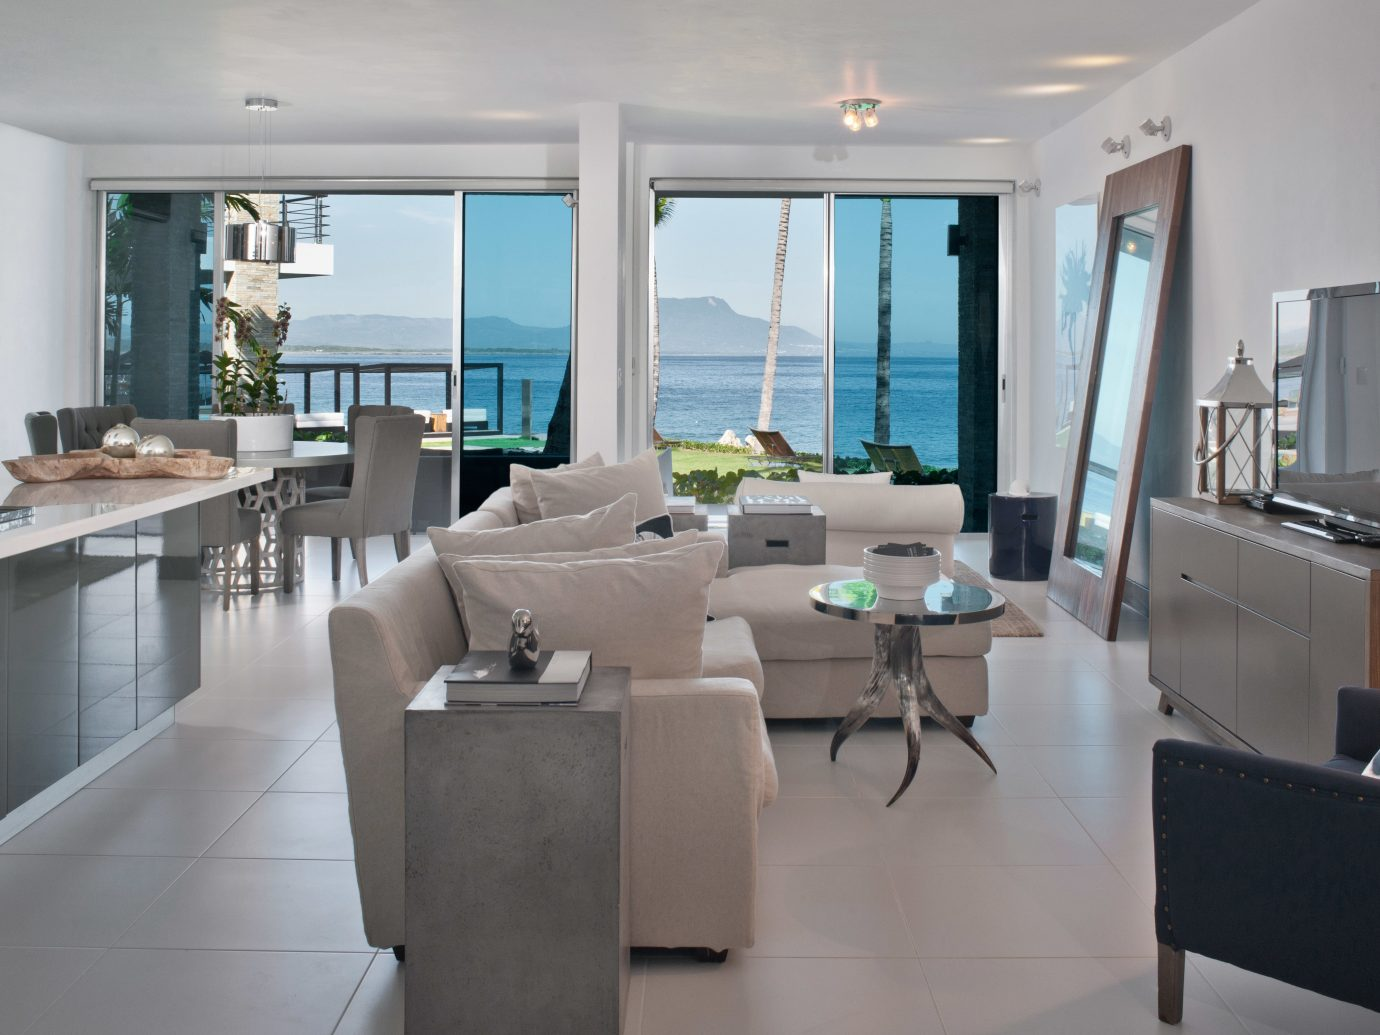 Room At The Gansevoort Hotel In The Dominican Republic